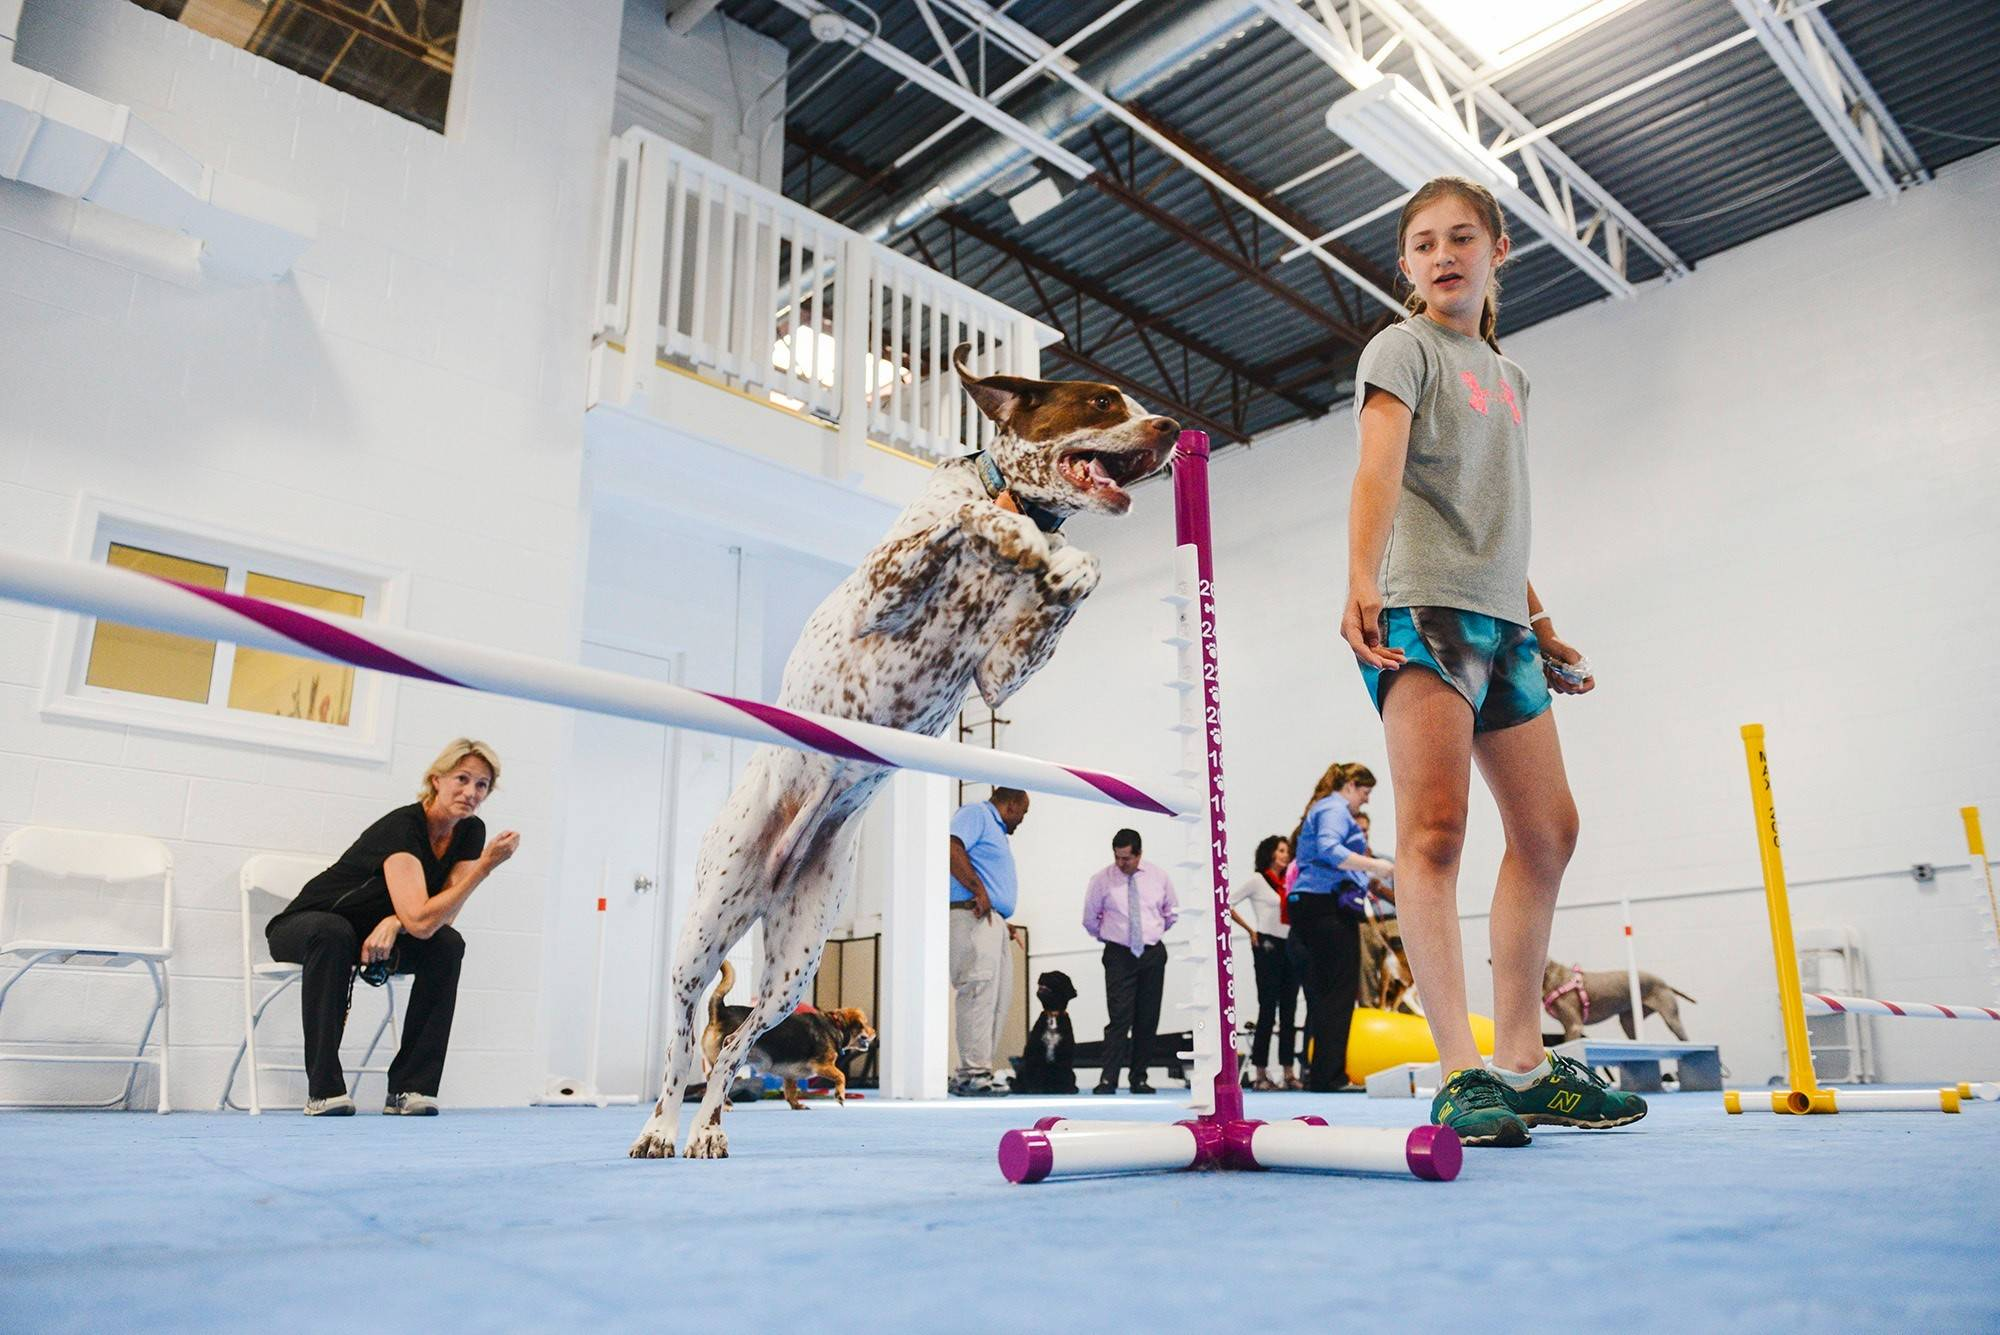 Leah Nickelsburg, 12, works with her dog Luna, a 4-year-old Bourbonnais pointer, on the agility course at the Frolick Dogs gym in Alexandria, Va. The 6,000-square-foot, air-conditioned facility has two treadmills, balance balls, cross-training space and an agility course of hurdles, tunnels and balance beams.